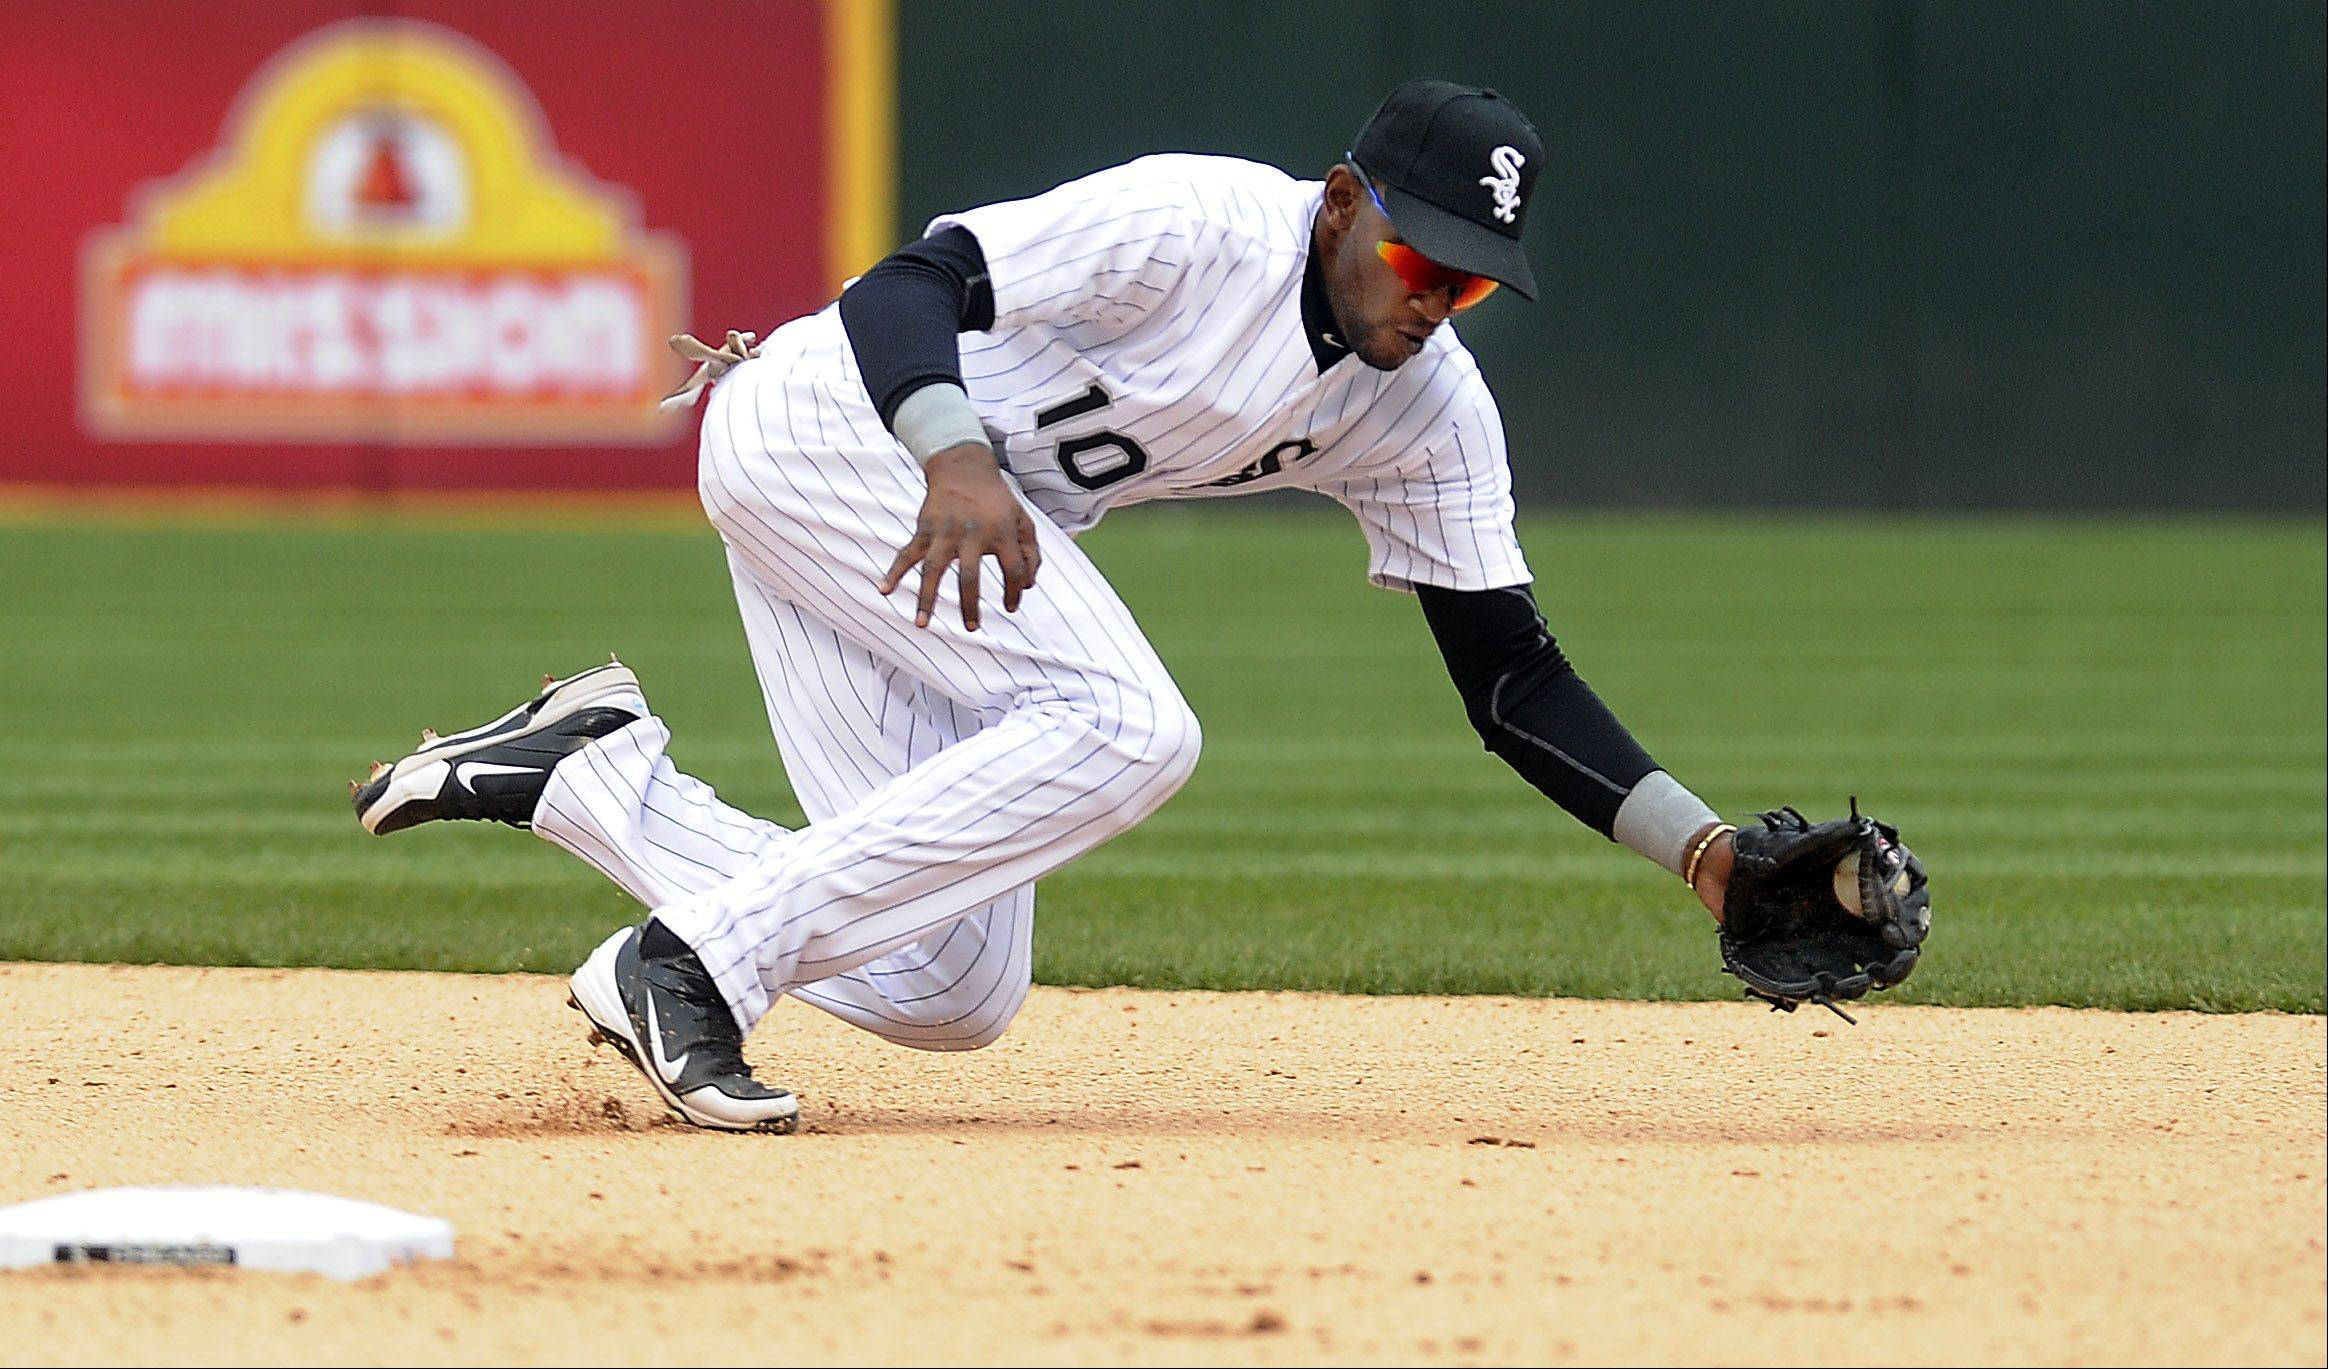 White Sox Alexei Ramirez stops a ball hit by the Tiger's Miguel Cabrera in the eighth inning .